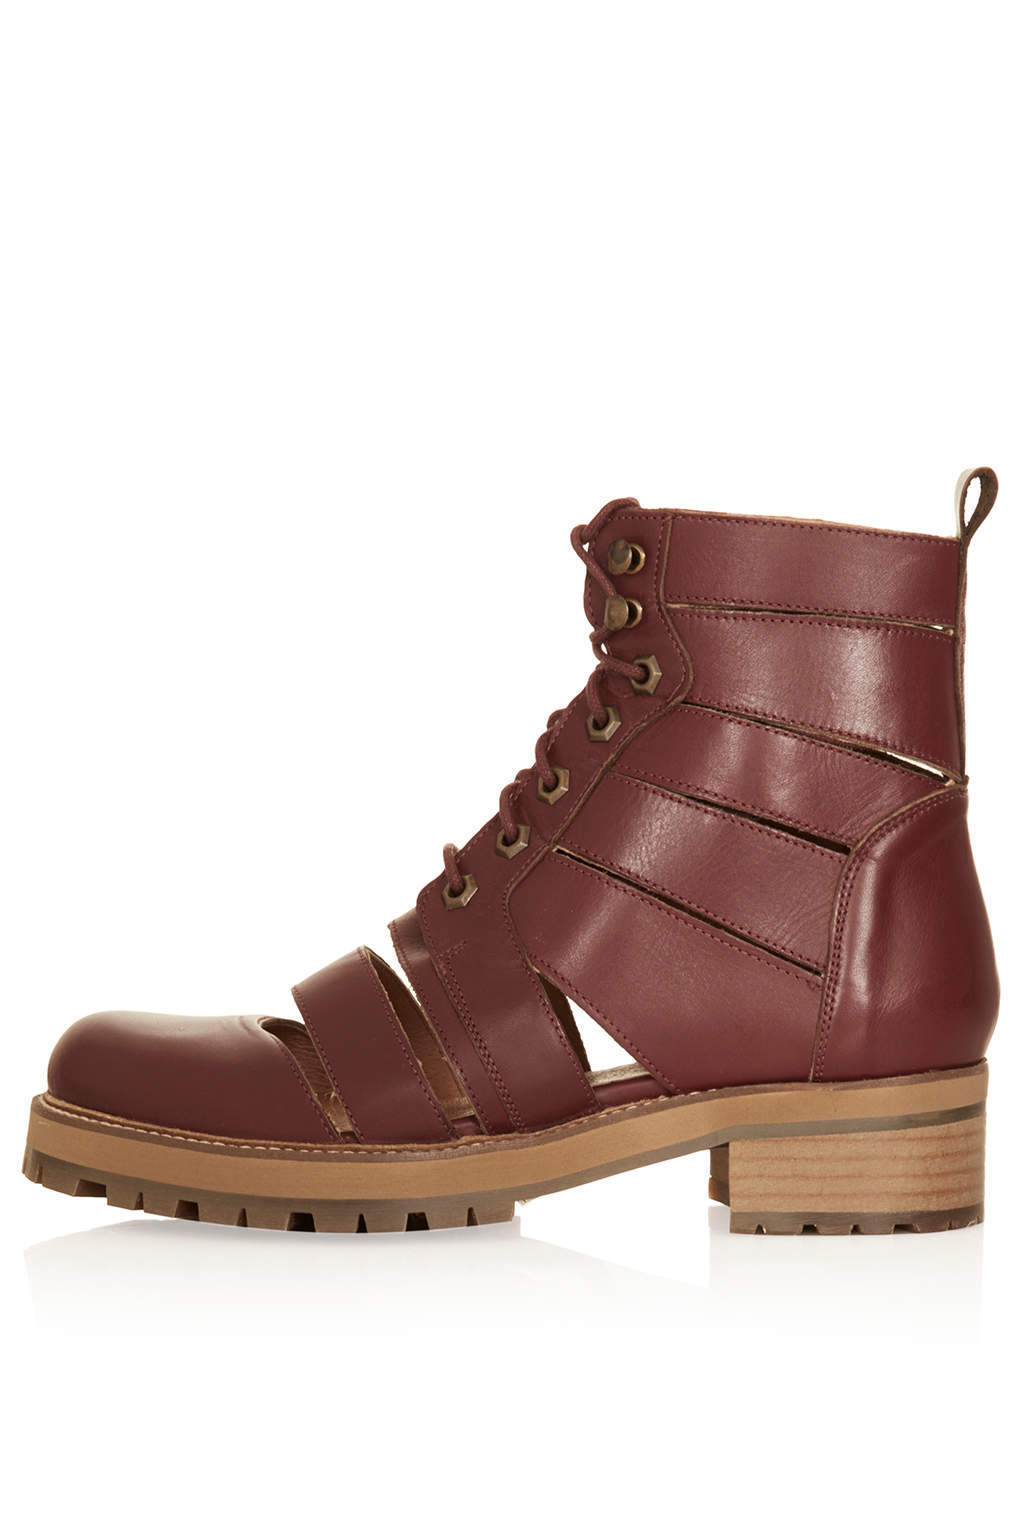 Topshop ANIMATE slashed boots in Bordeaux ( New with box )